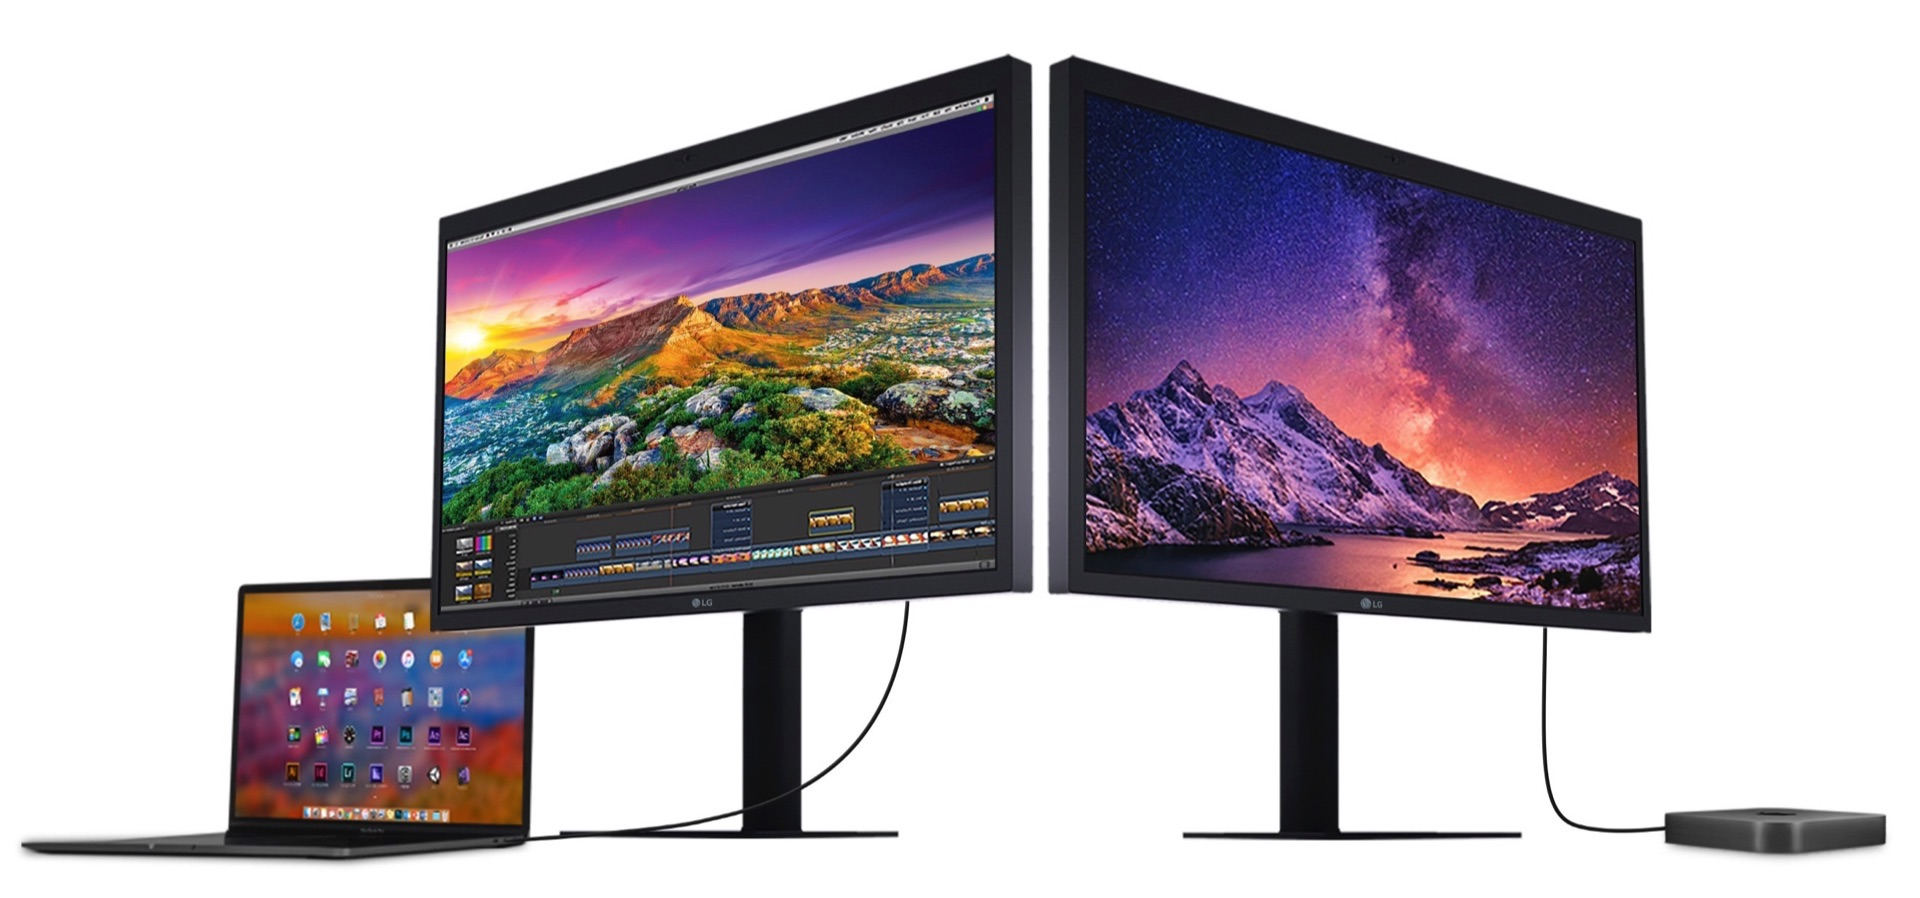 LG UltraFine 5K Display 27MD5KL